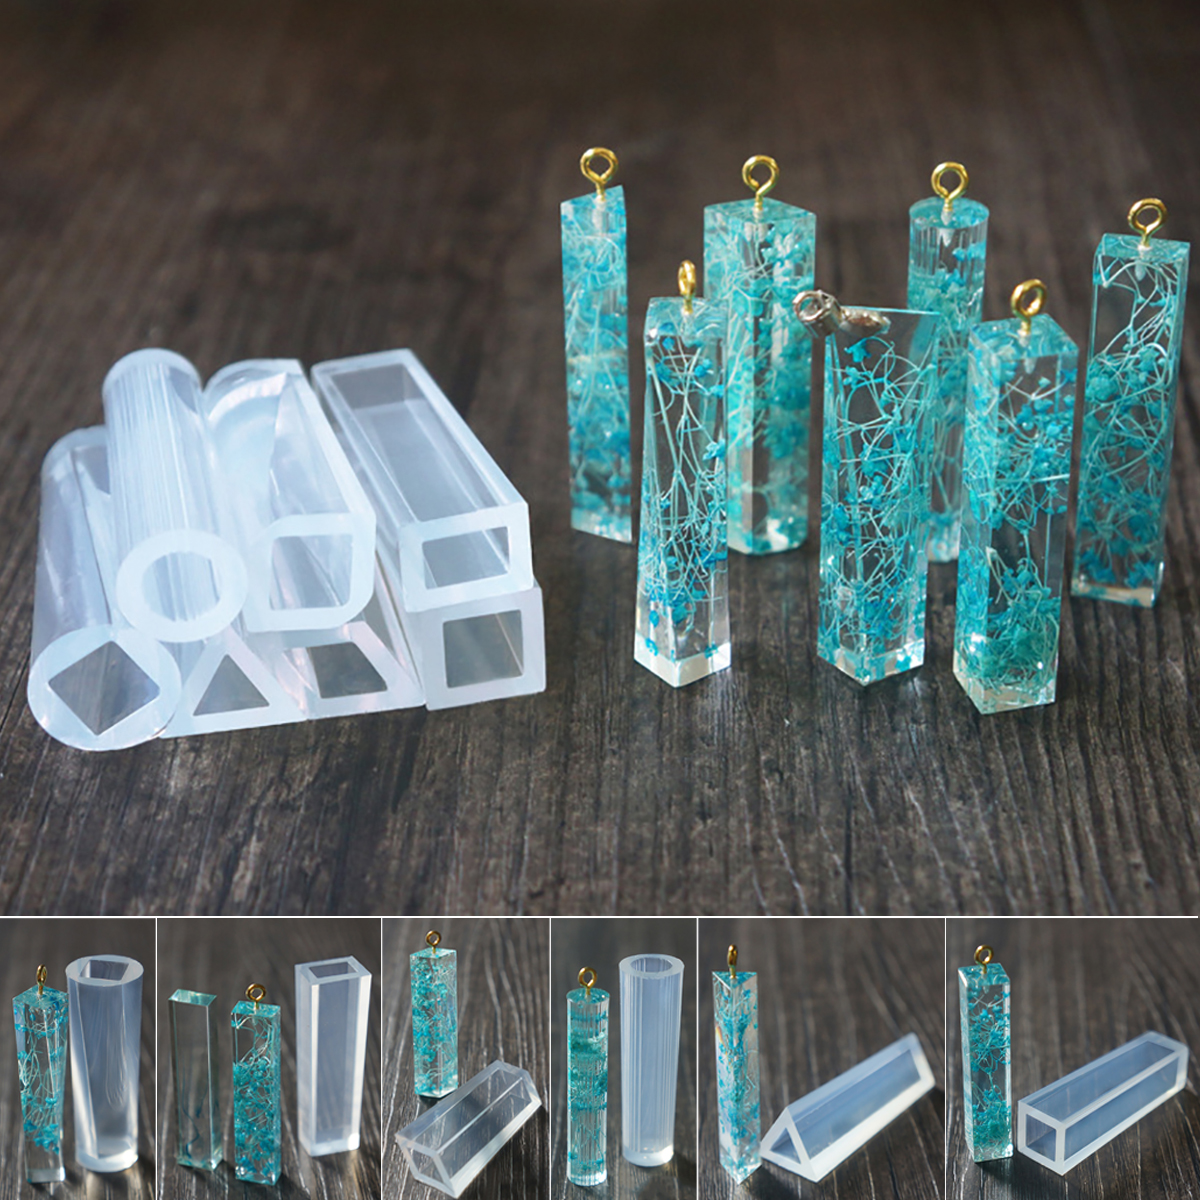 7pcs Mix Style Pendant Fashion Scrapbooking Silicone Mould DIY Epoxy Resin Decorative Craft Jewelry Making Mold